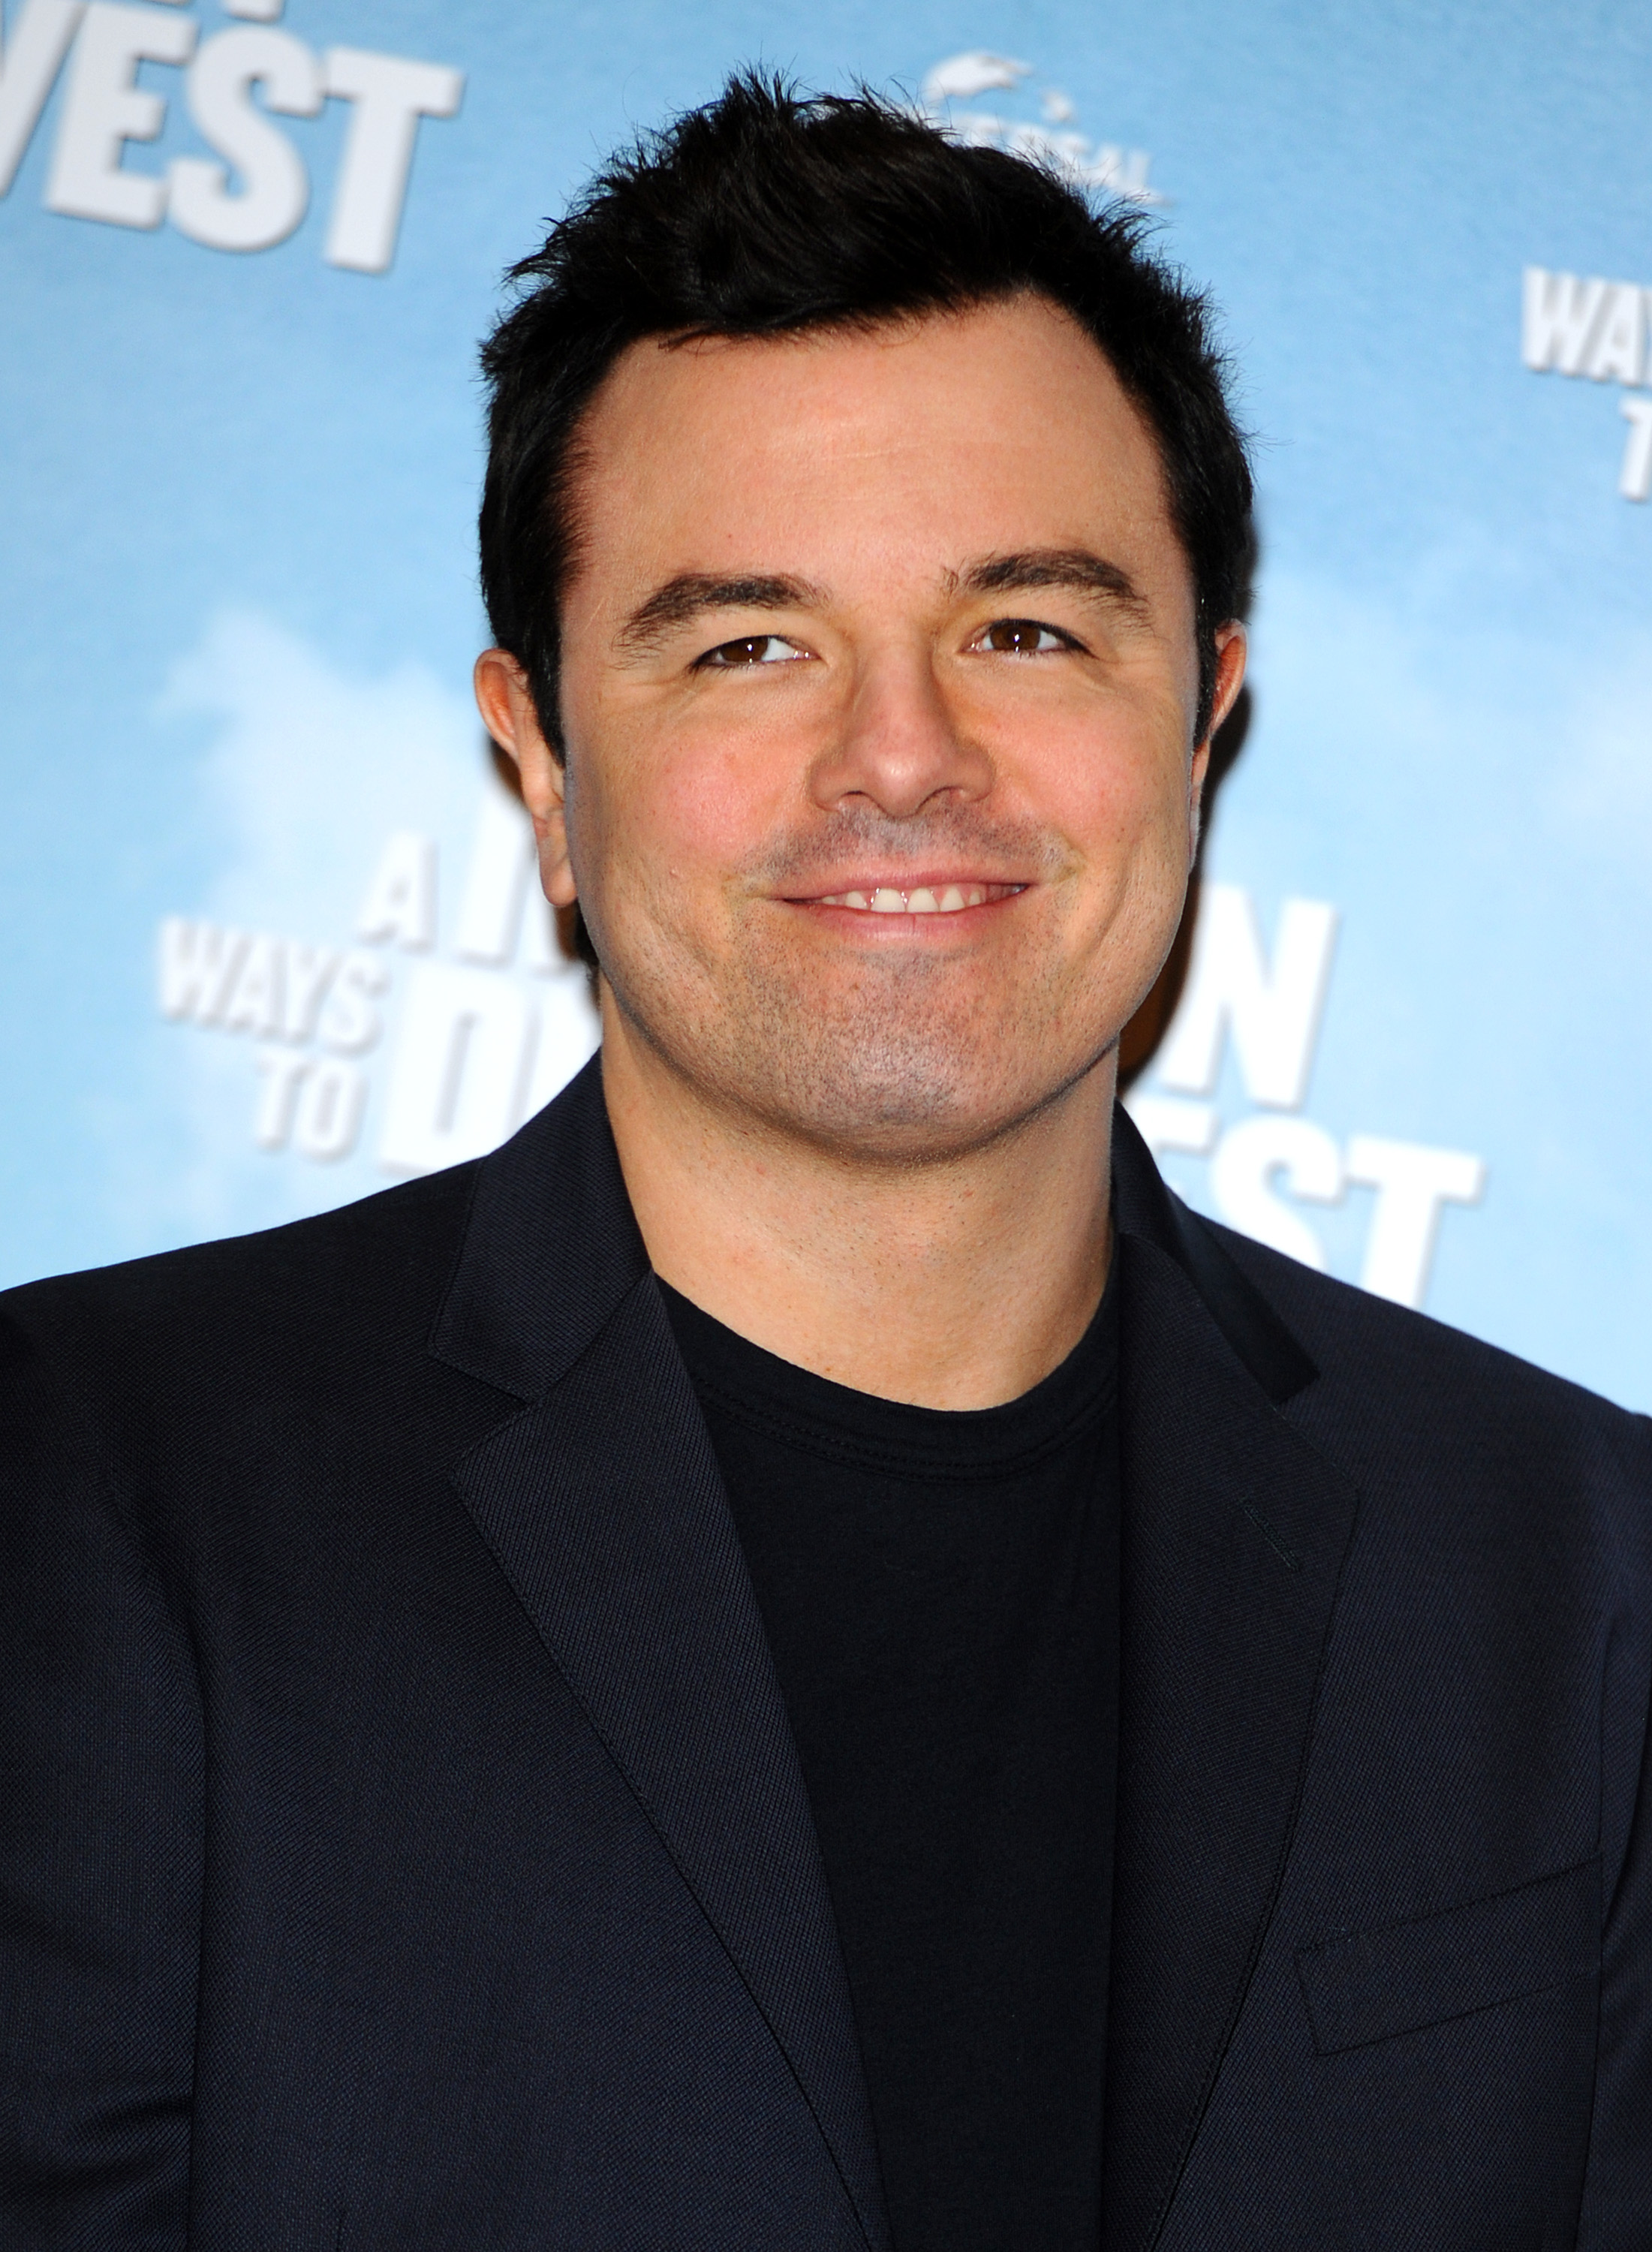 Seth Macfarlane attends a photocall to promote  A Million Ways To Die In The West  on May 27, 2014 in London, England.